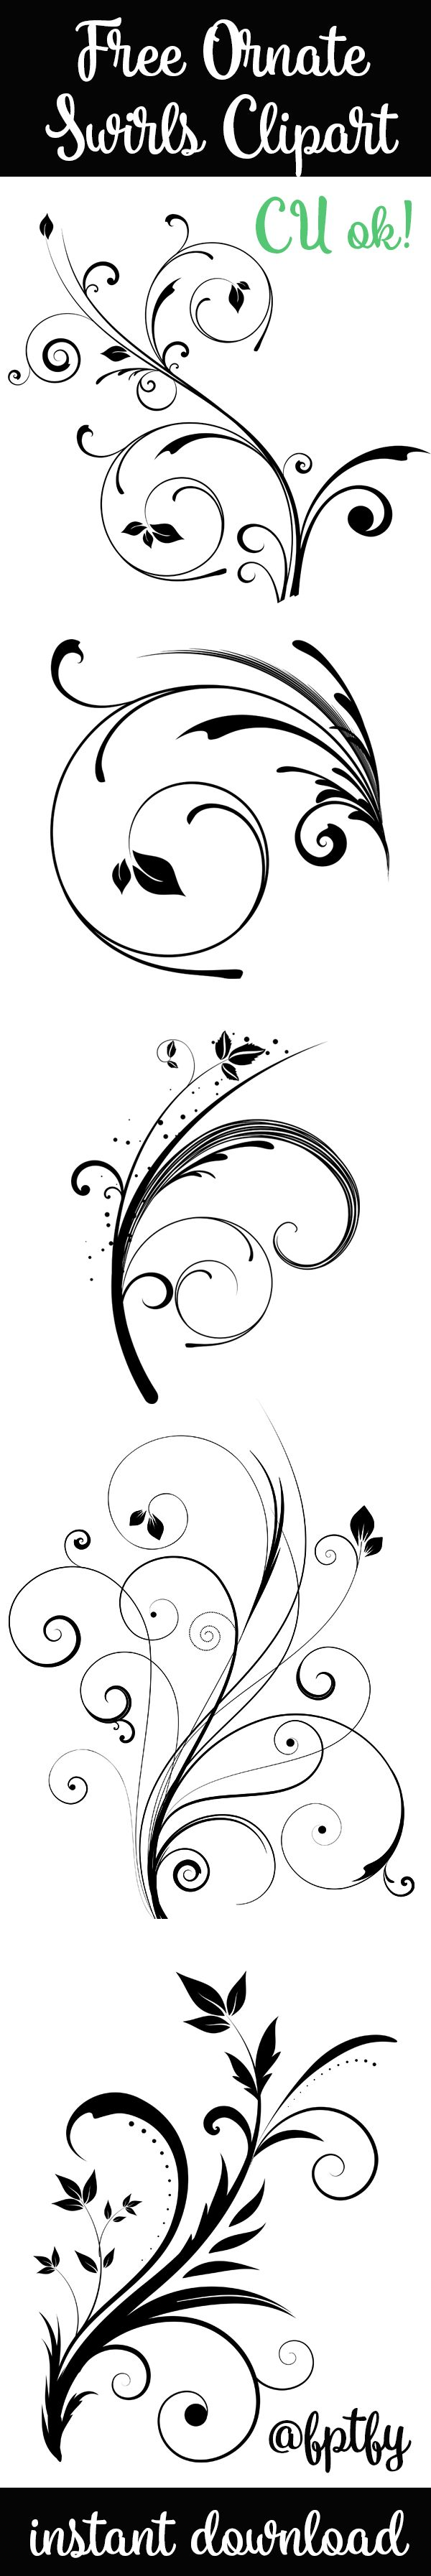 9 Free Ornate Swirl Clipart -CU ok! - Free Pretty Things For You